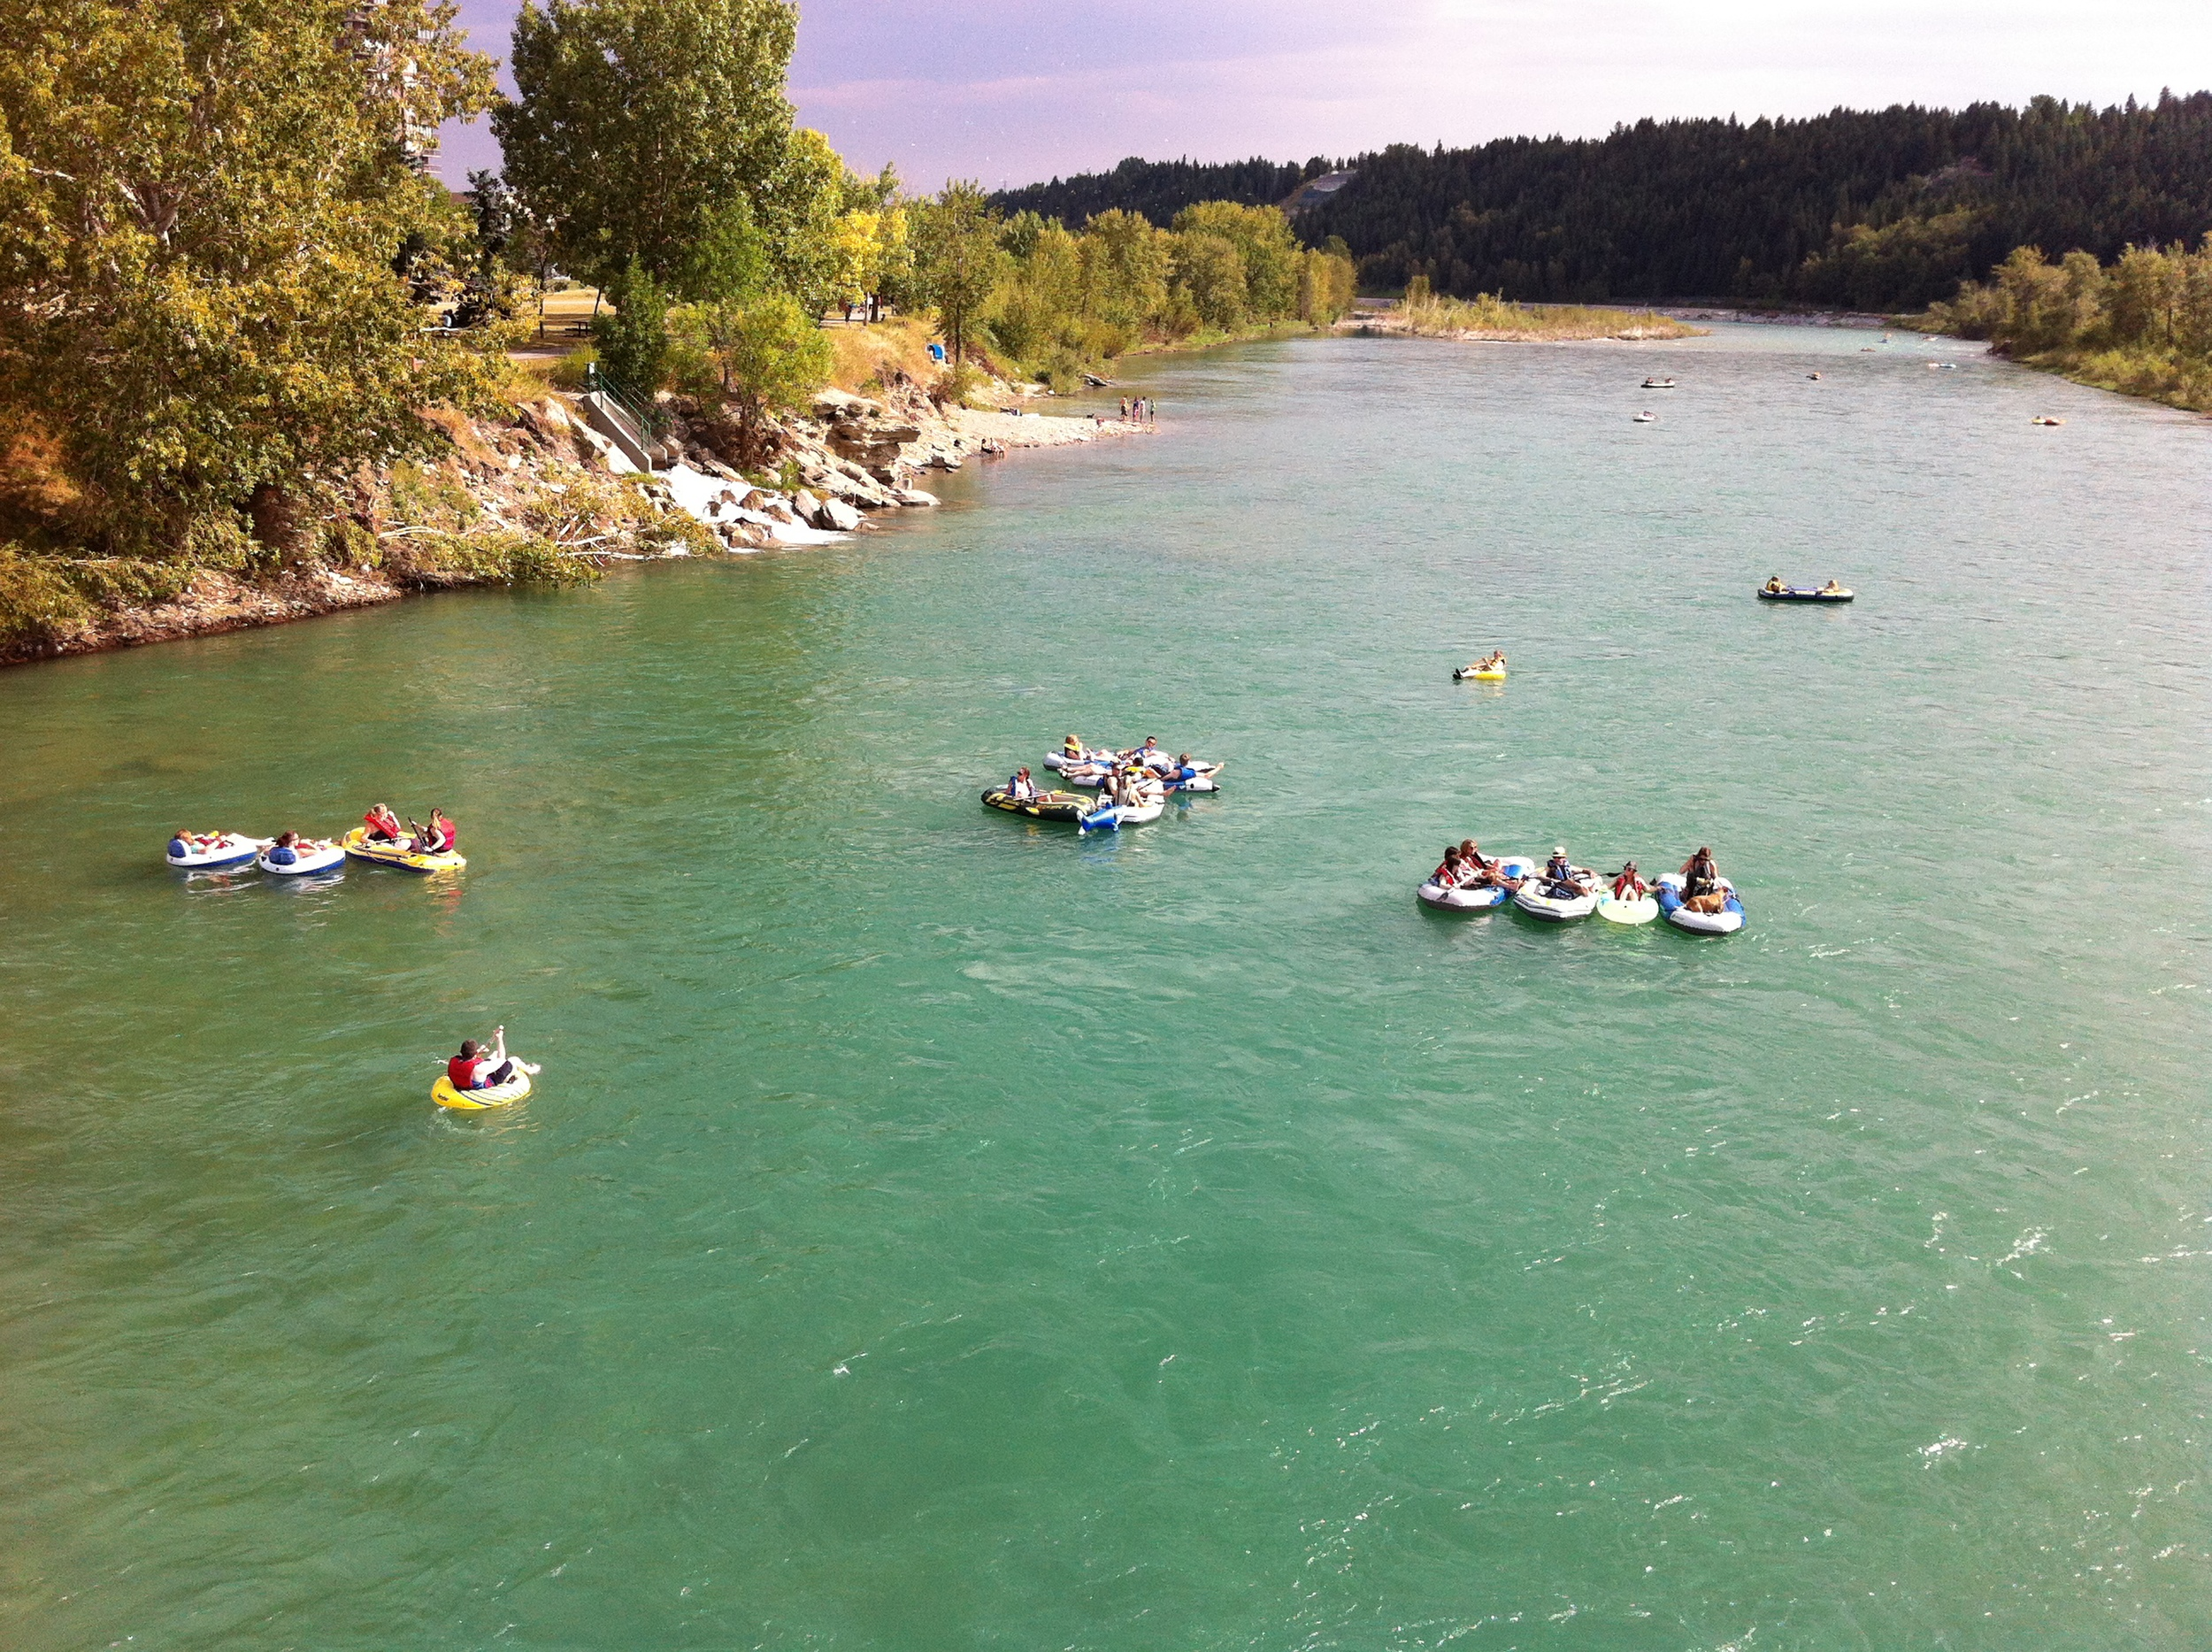 Floating down one of Calgary's two rivers is a great way to spend a summer day with visiting family and friends. You could even try your hand a fly fishing as the Bow River is one of the best fly fishing rivers in the world.